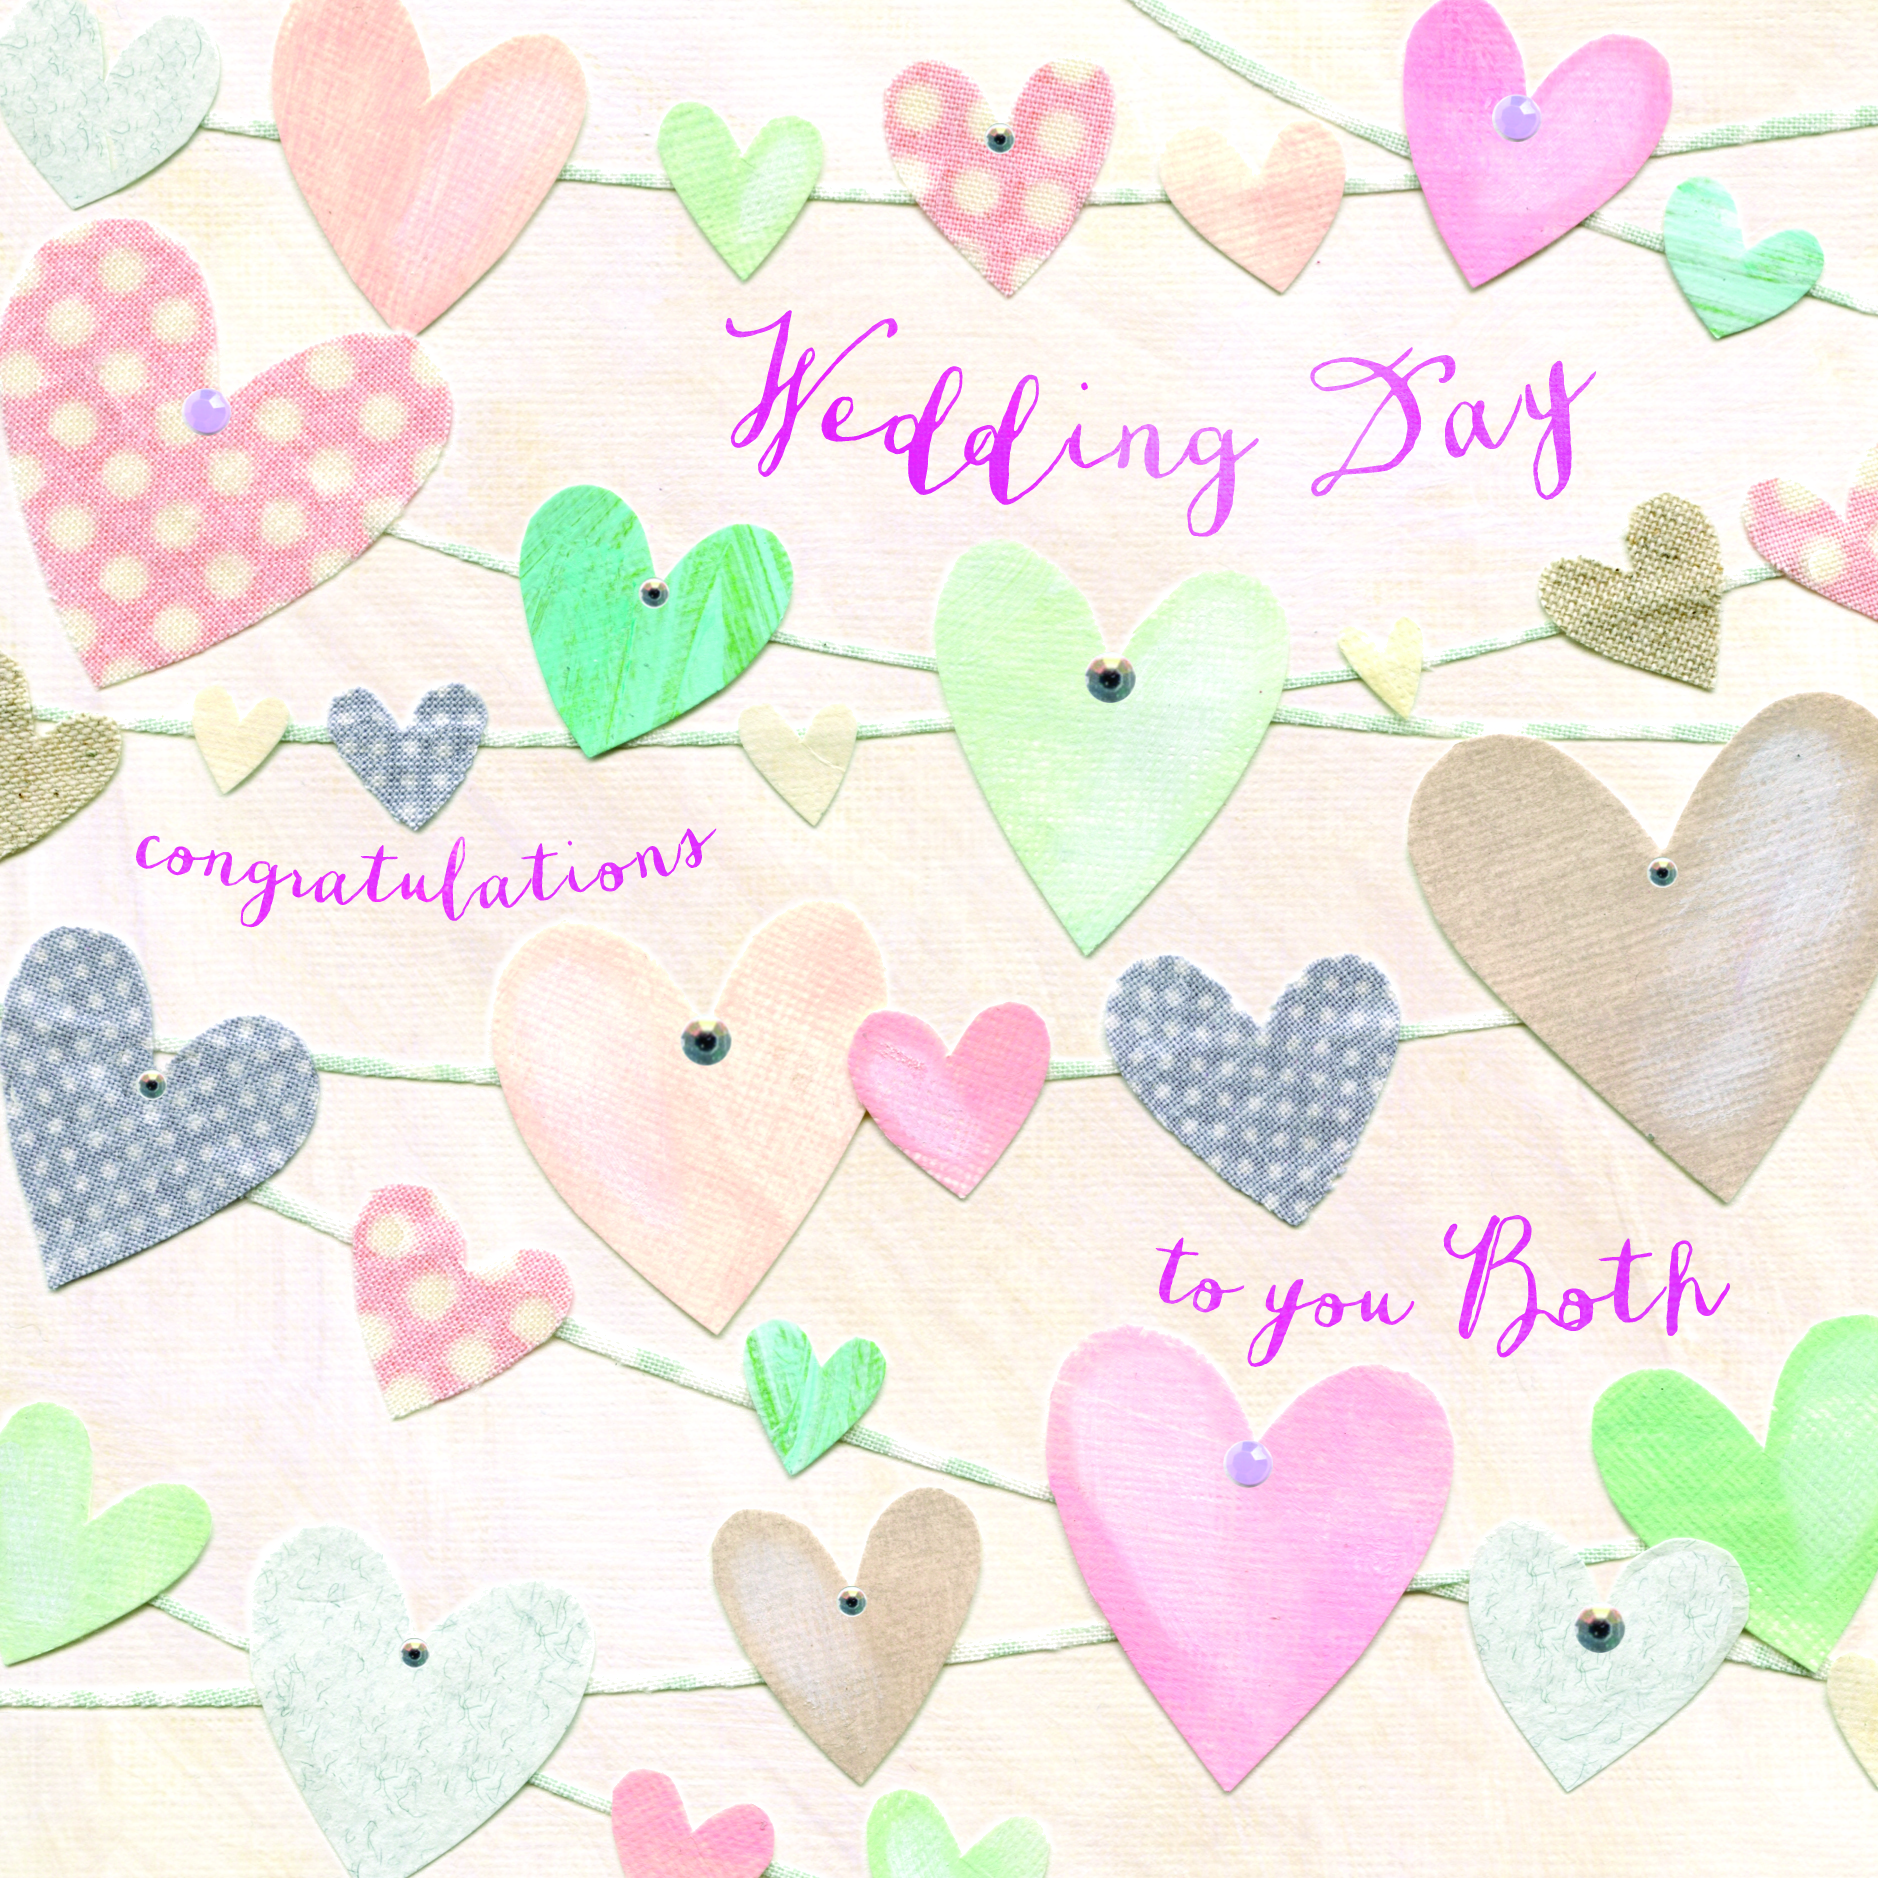 PIC 3 ADD12 WEDDING HEART BUNTING.JPG